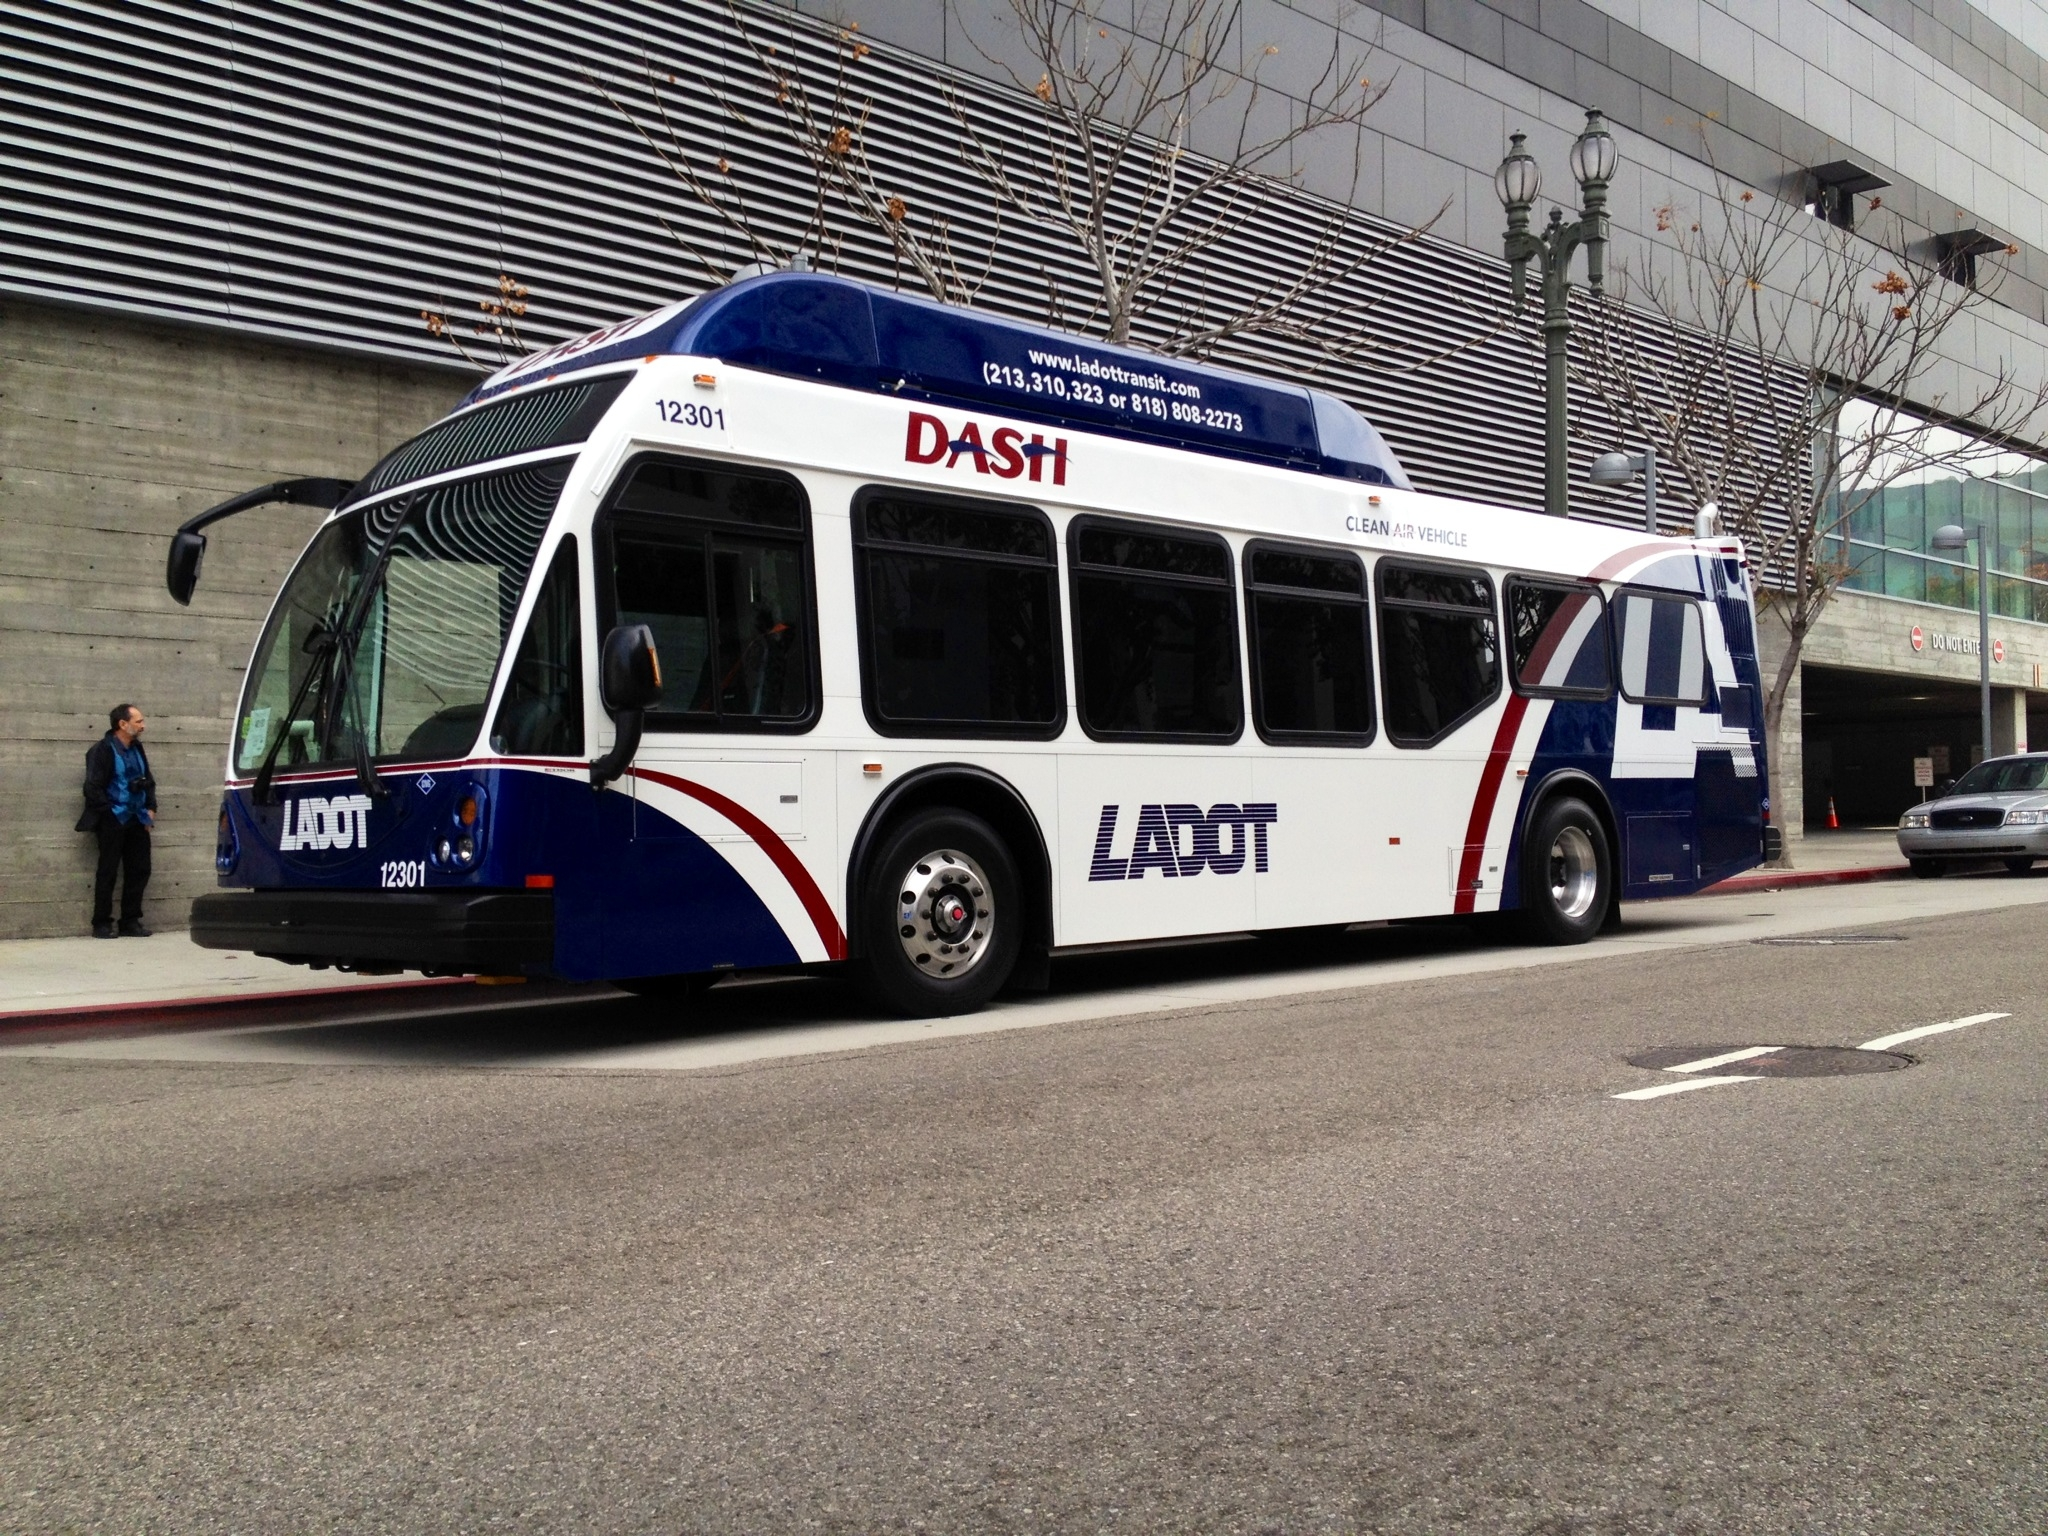 ladot rolls out new dash bus | the ones